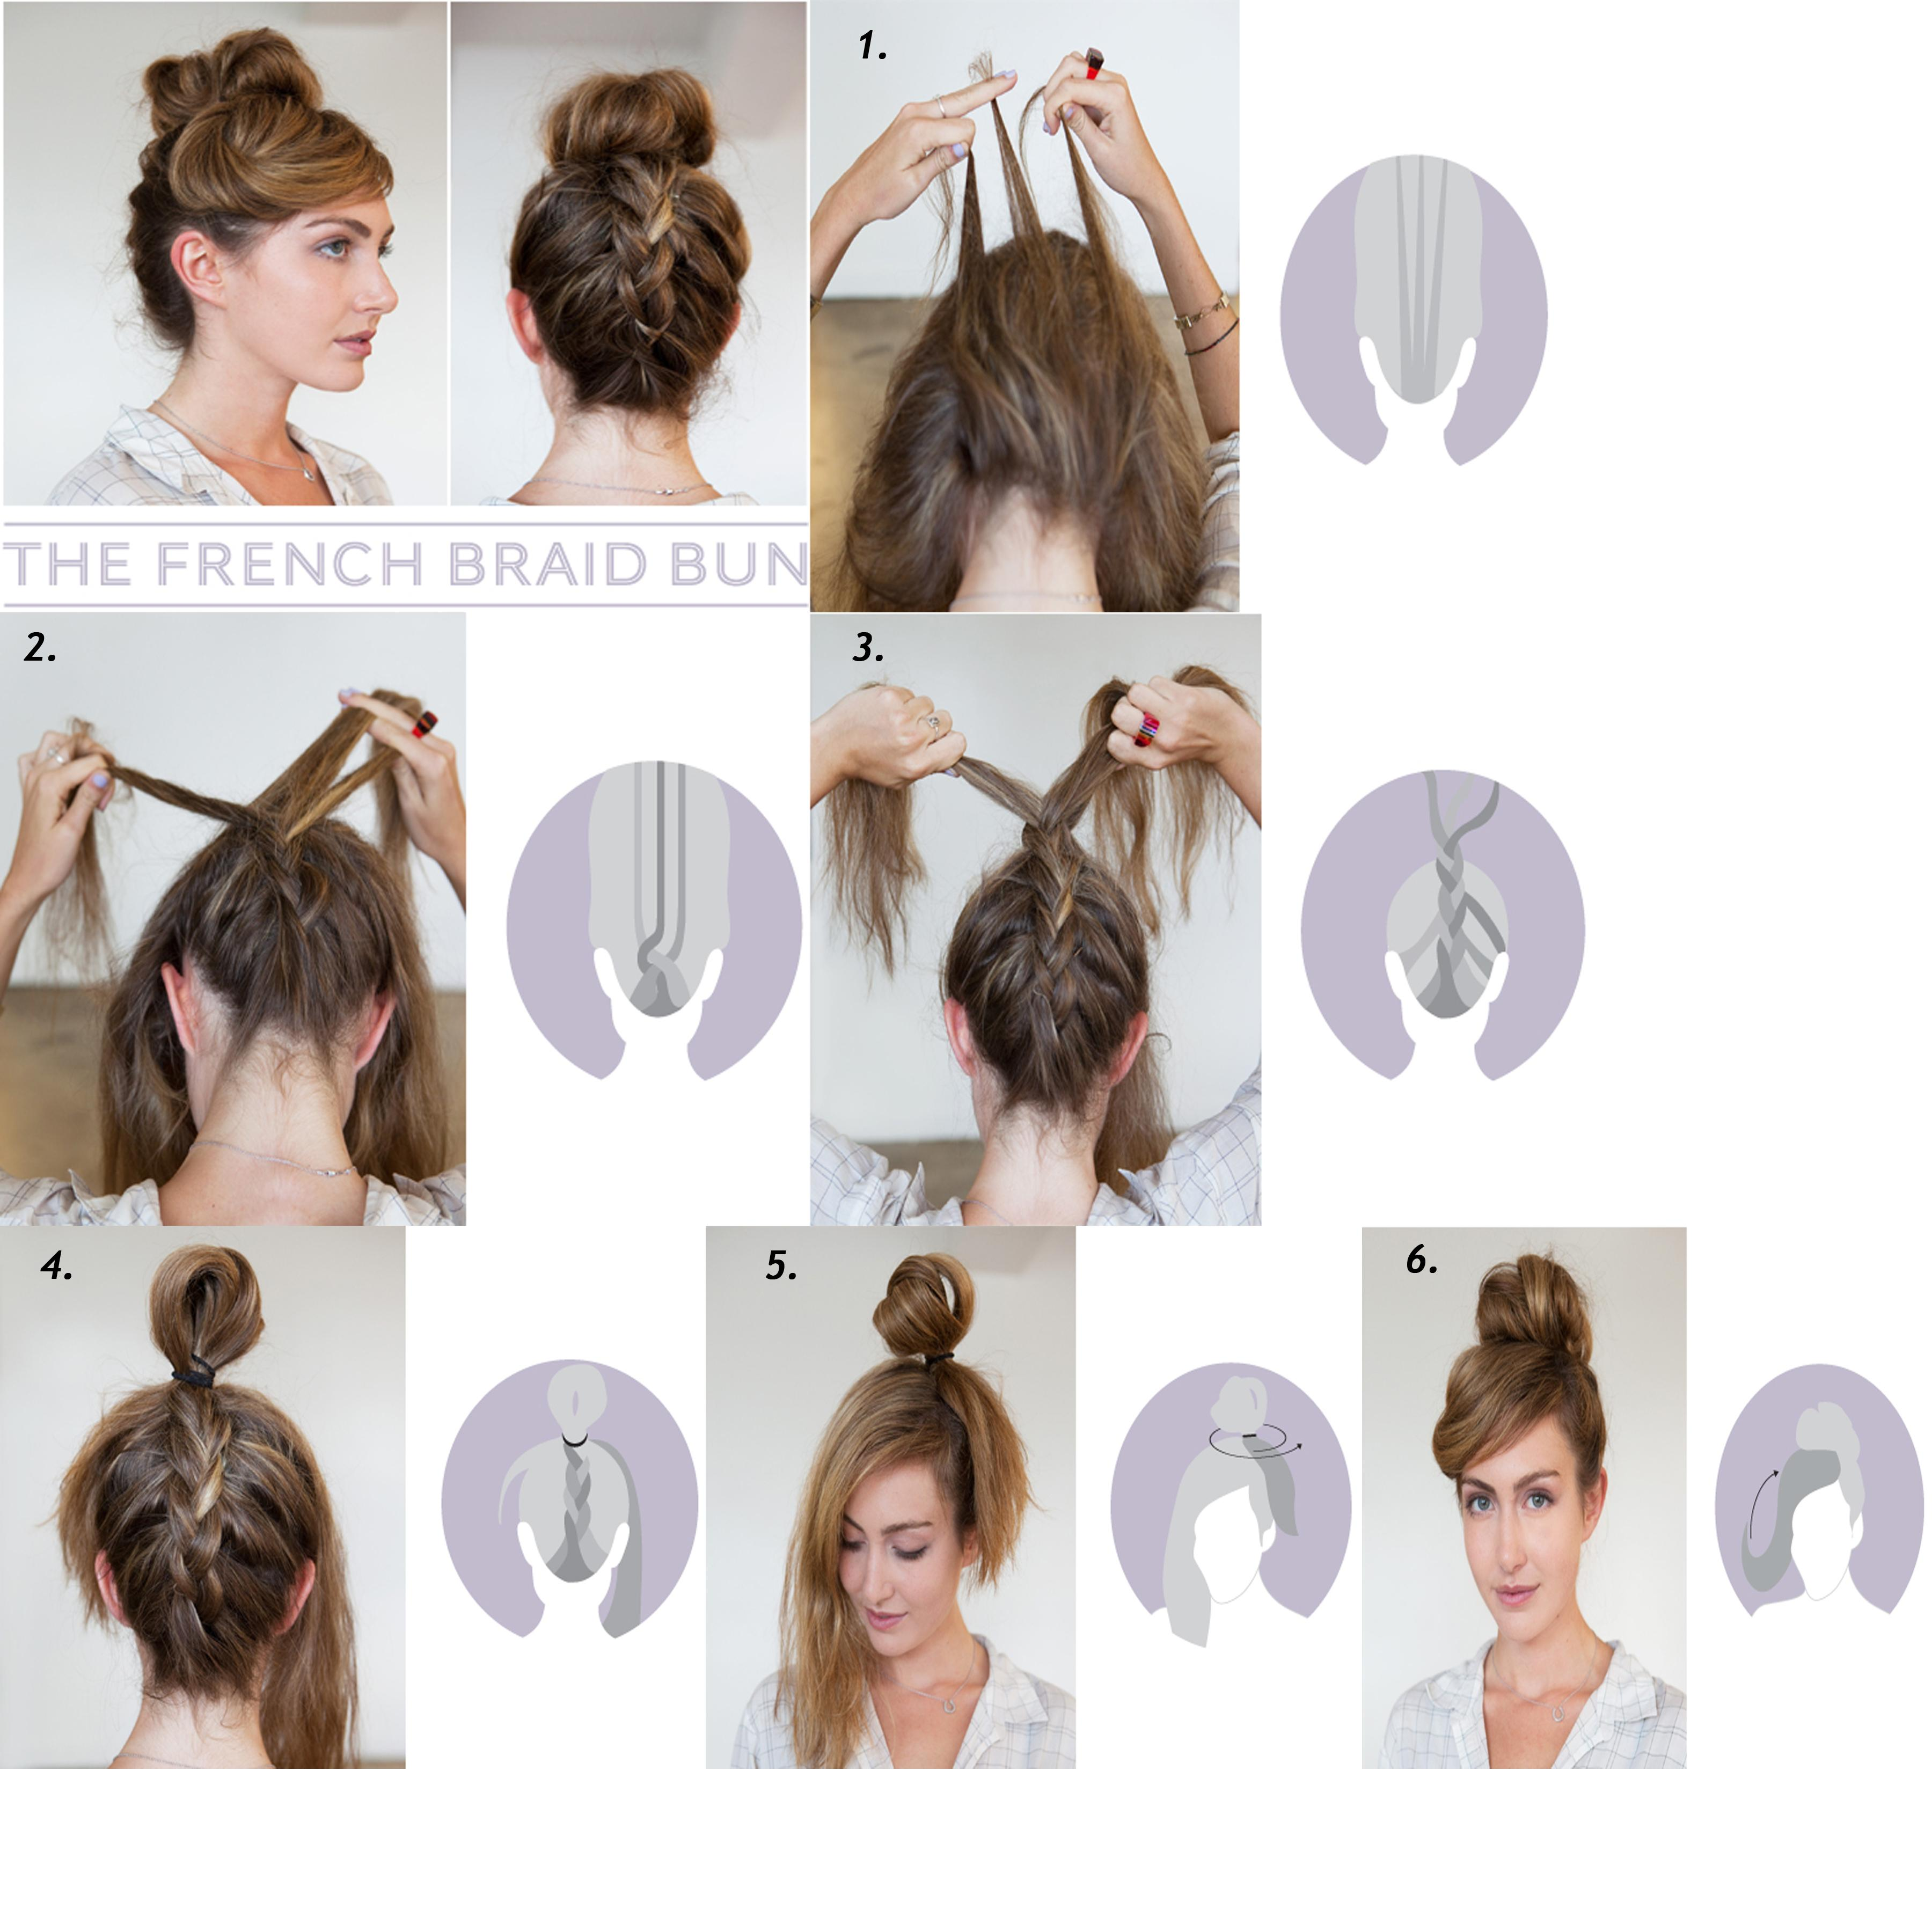 awesome do it yourself hairstyles - braided bun | guff